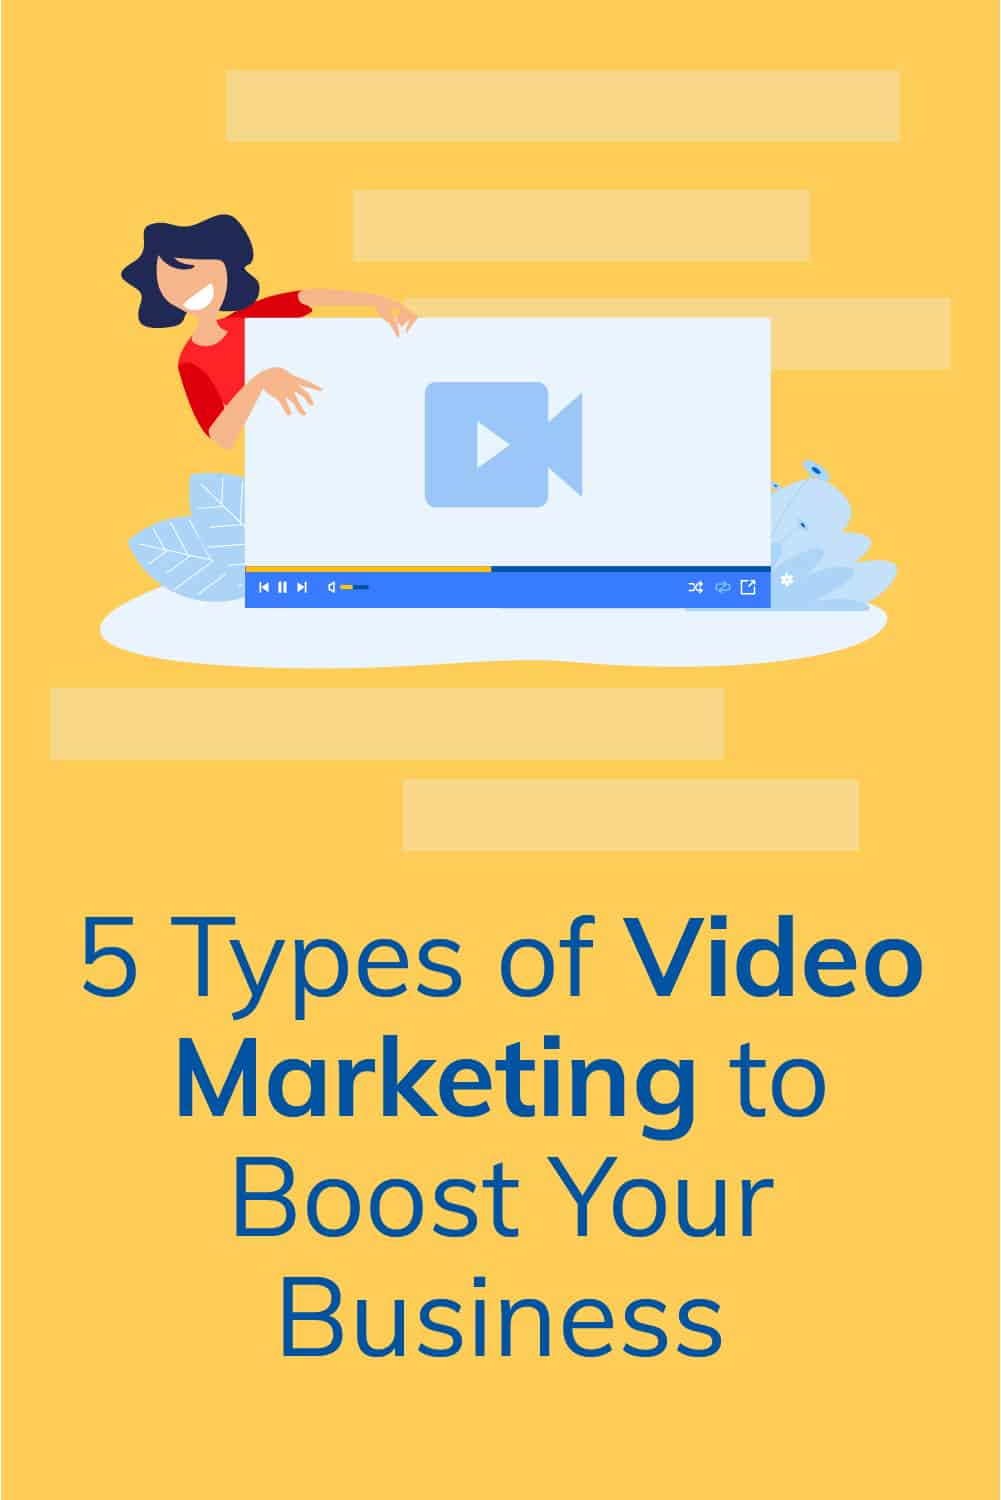 Video marketing is still the king of the hill when it comes to boosting your business! via @scopedesign